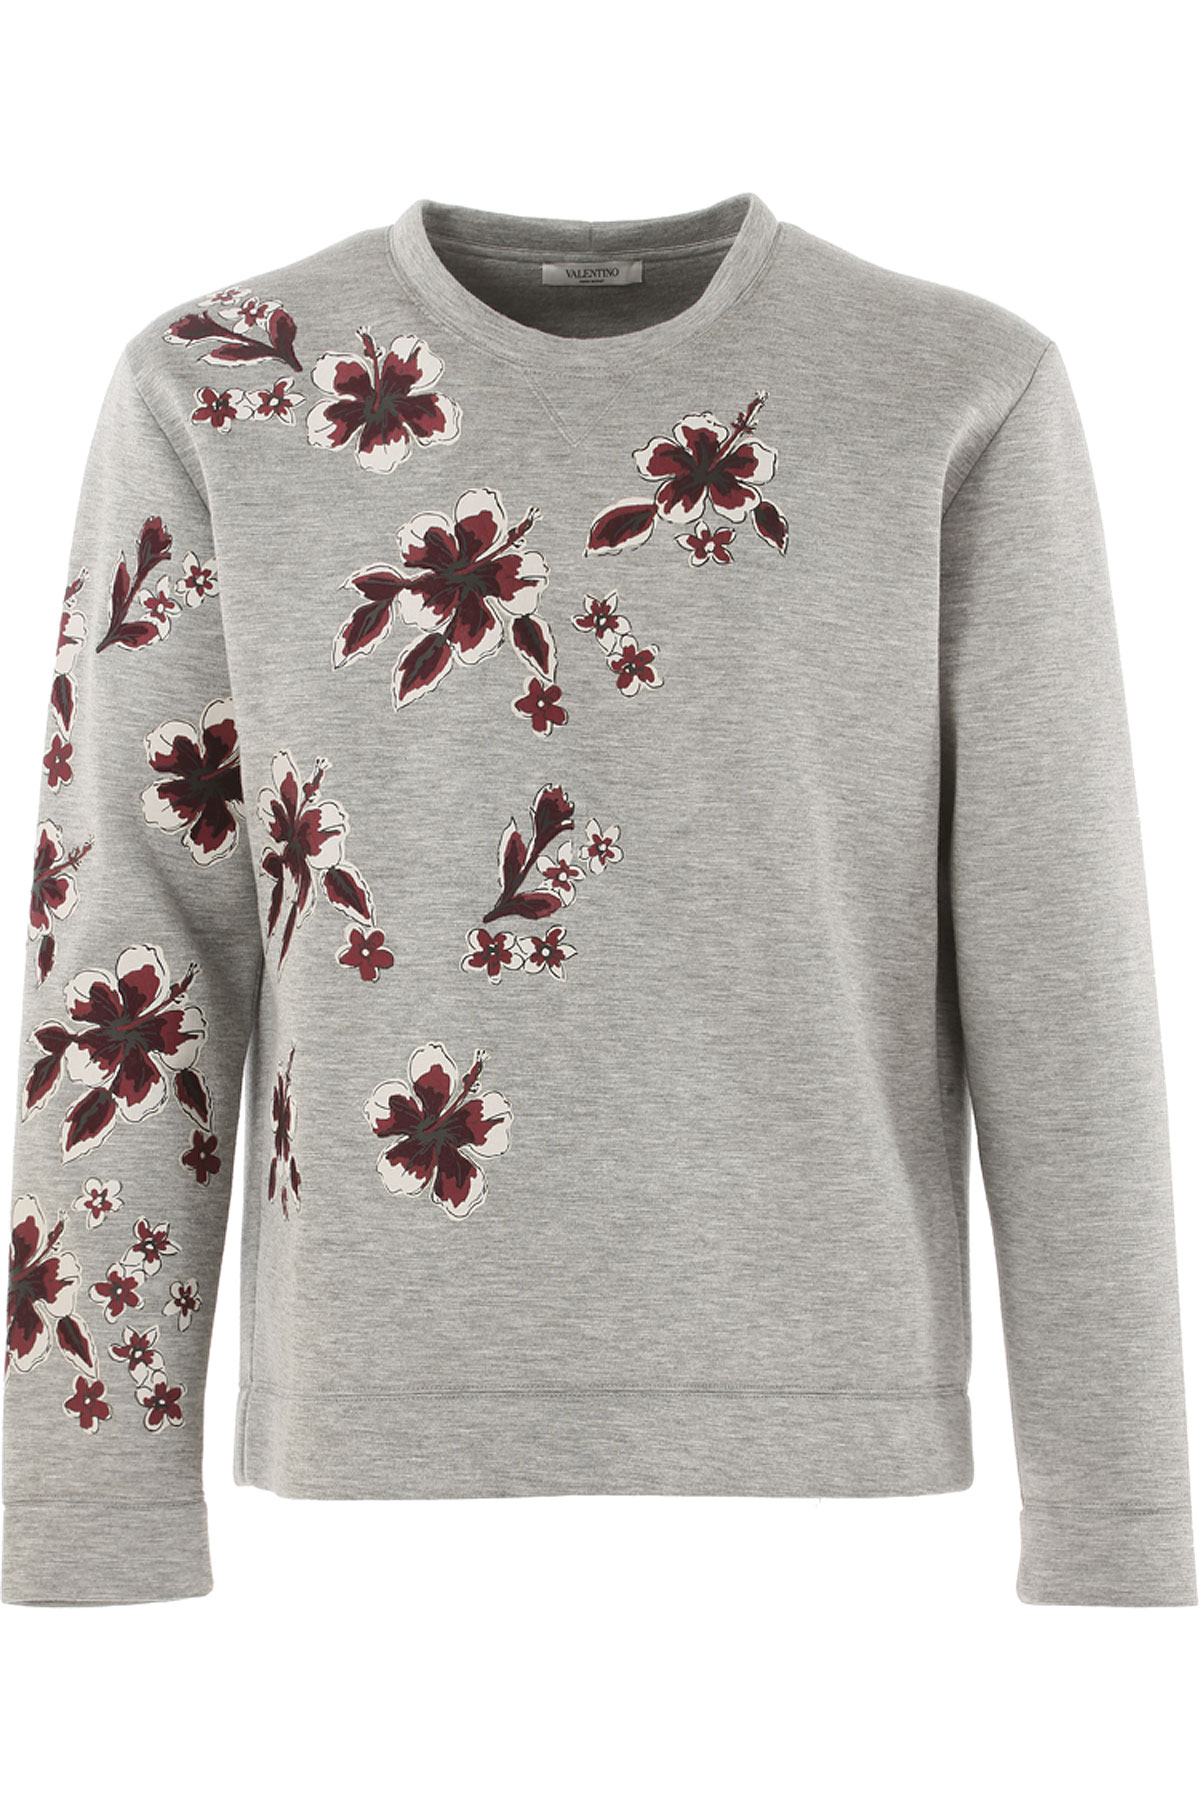 Valentino Sweatshirt for Men On Sale in Outlet, Grey, Modal, 2017, M S USA-382029